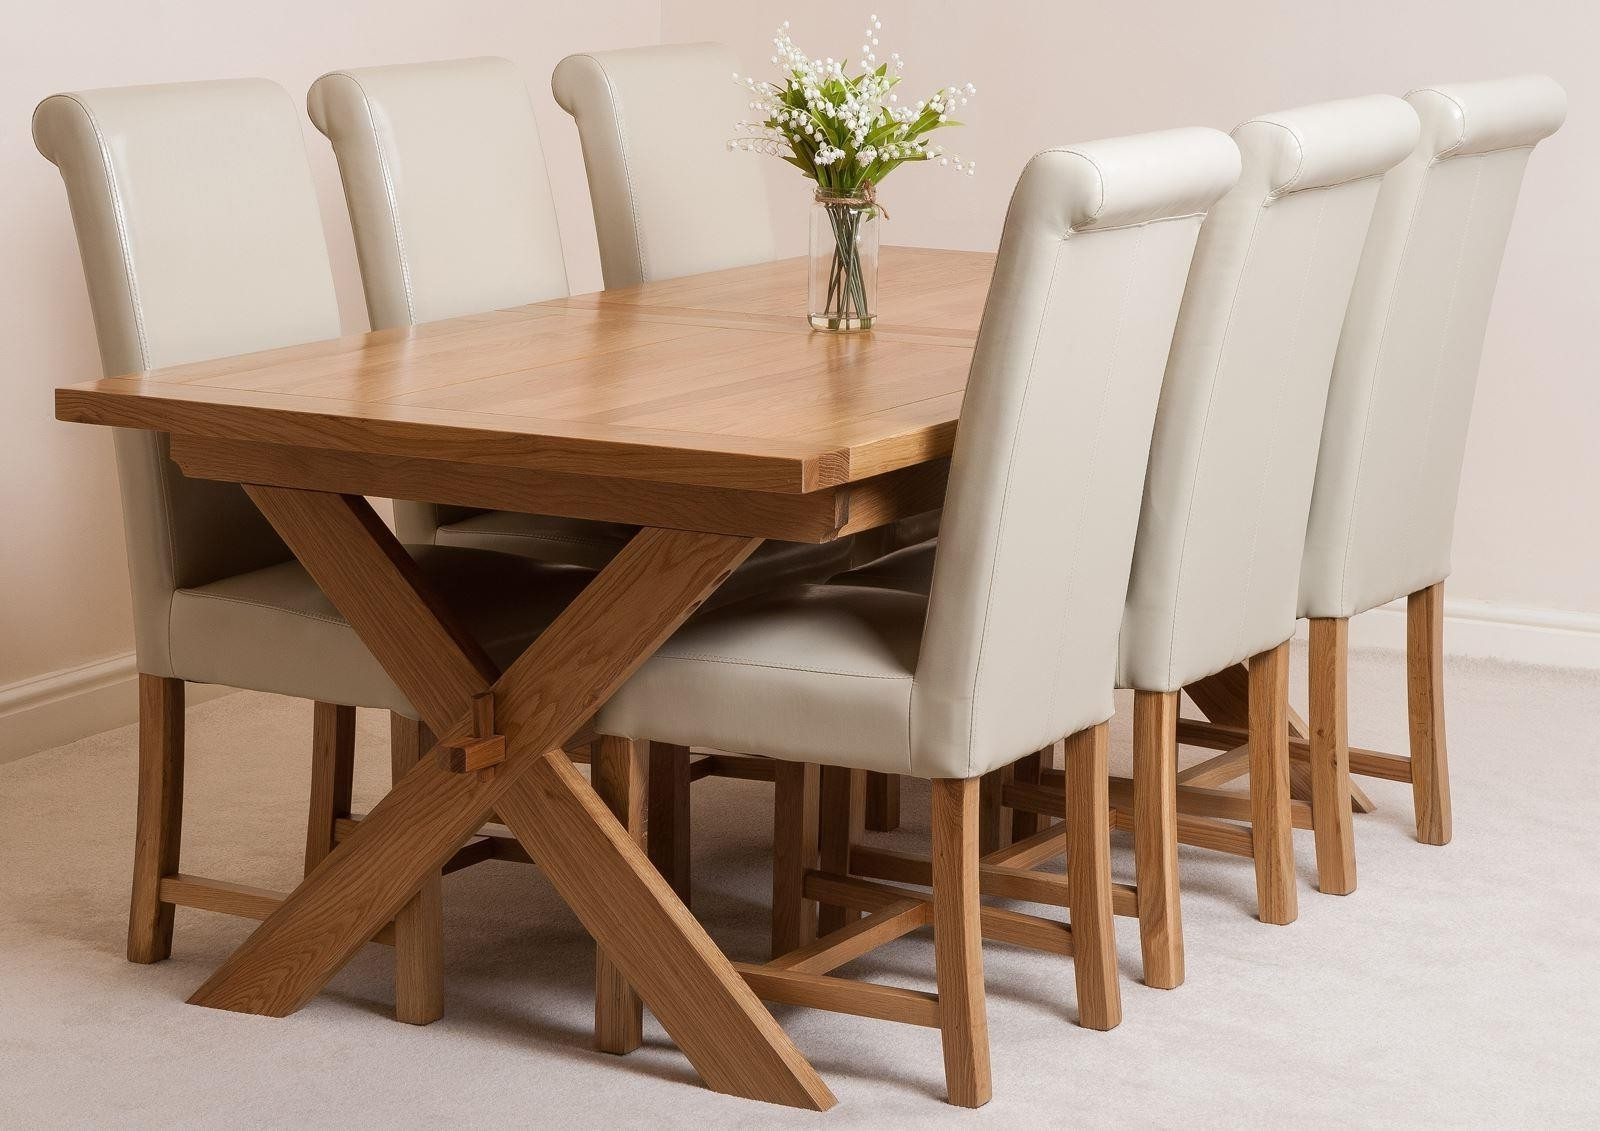 Dining Table Sets With 6 Chairs Within Widely Used Vermont Dining Set With 6 Ivory Chairs (View 12 of 25)